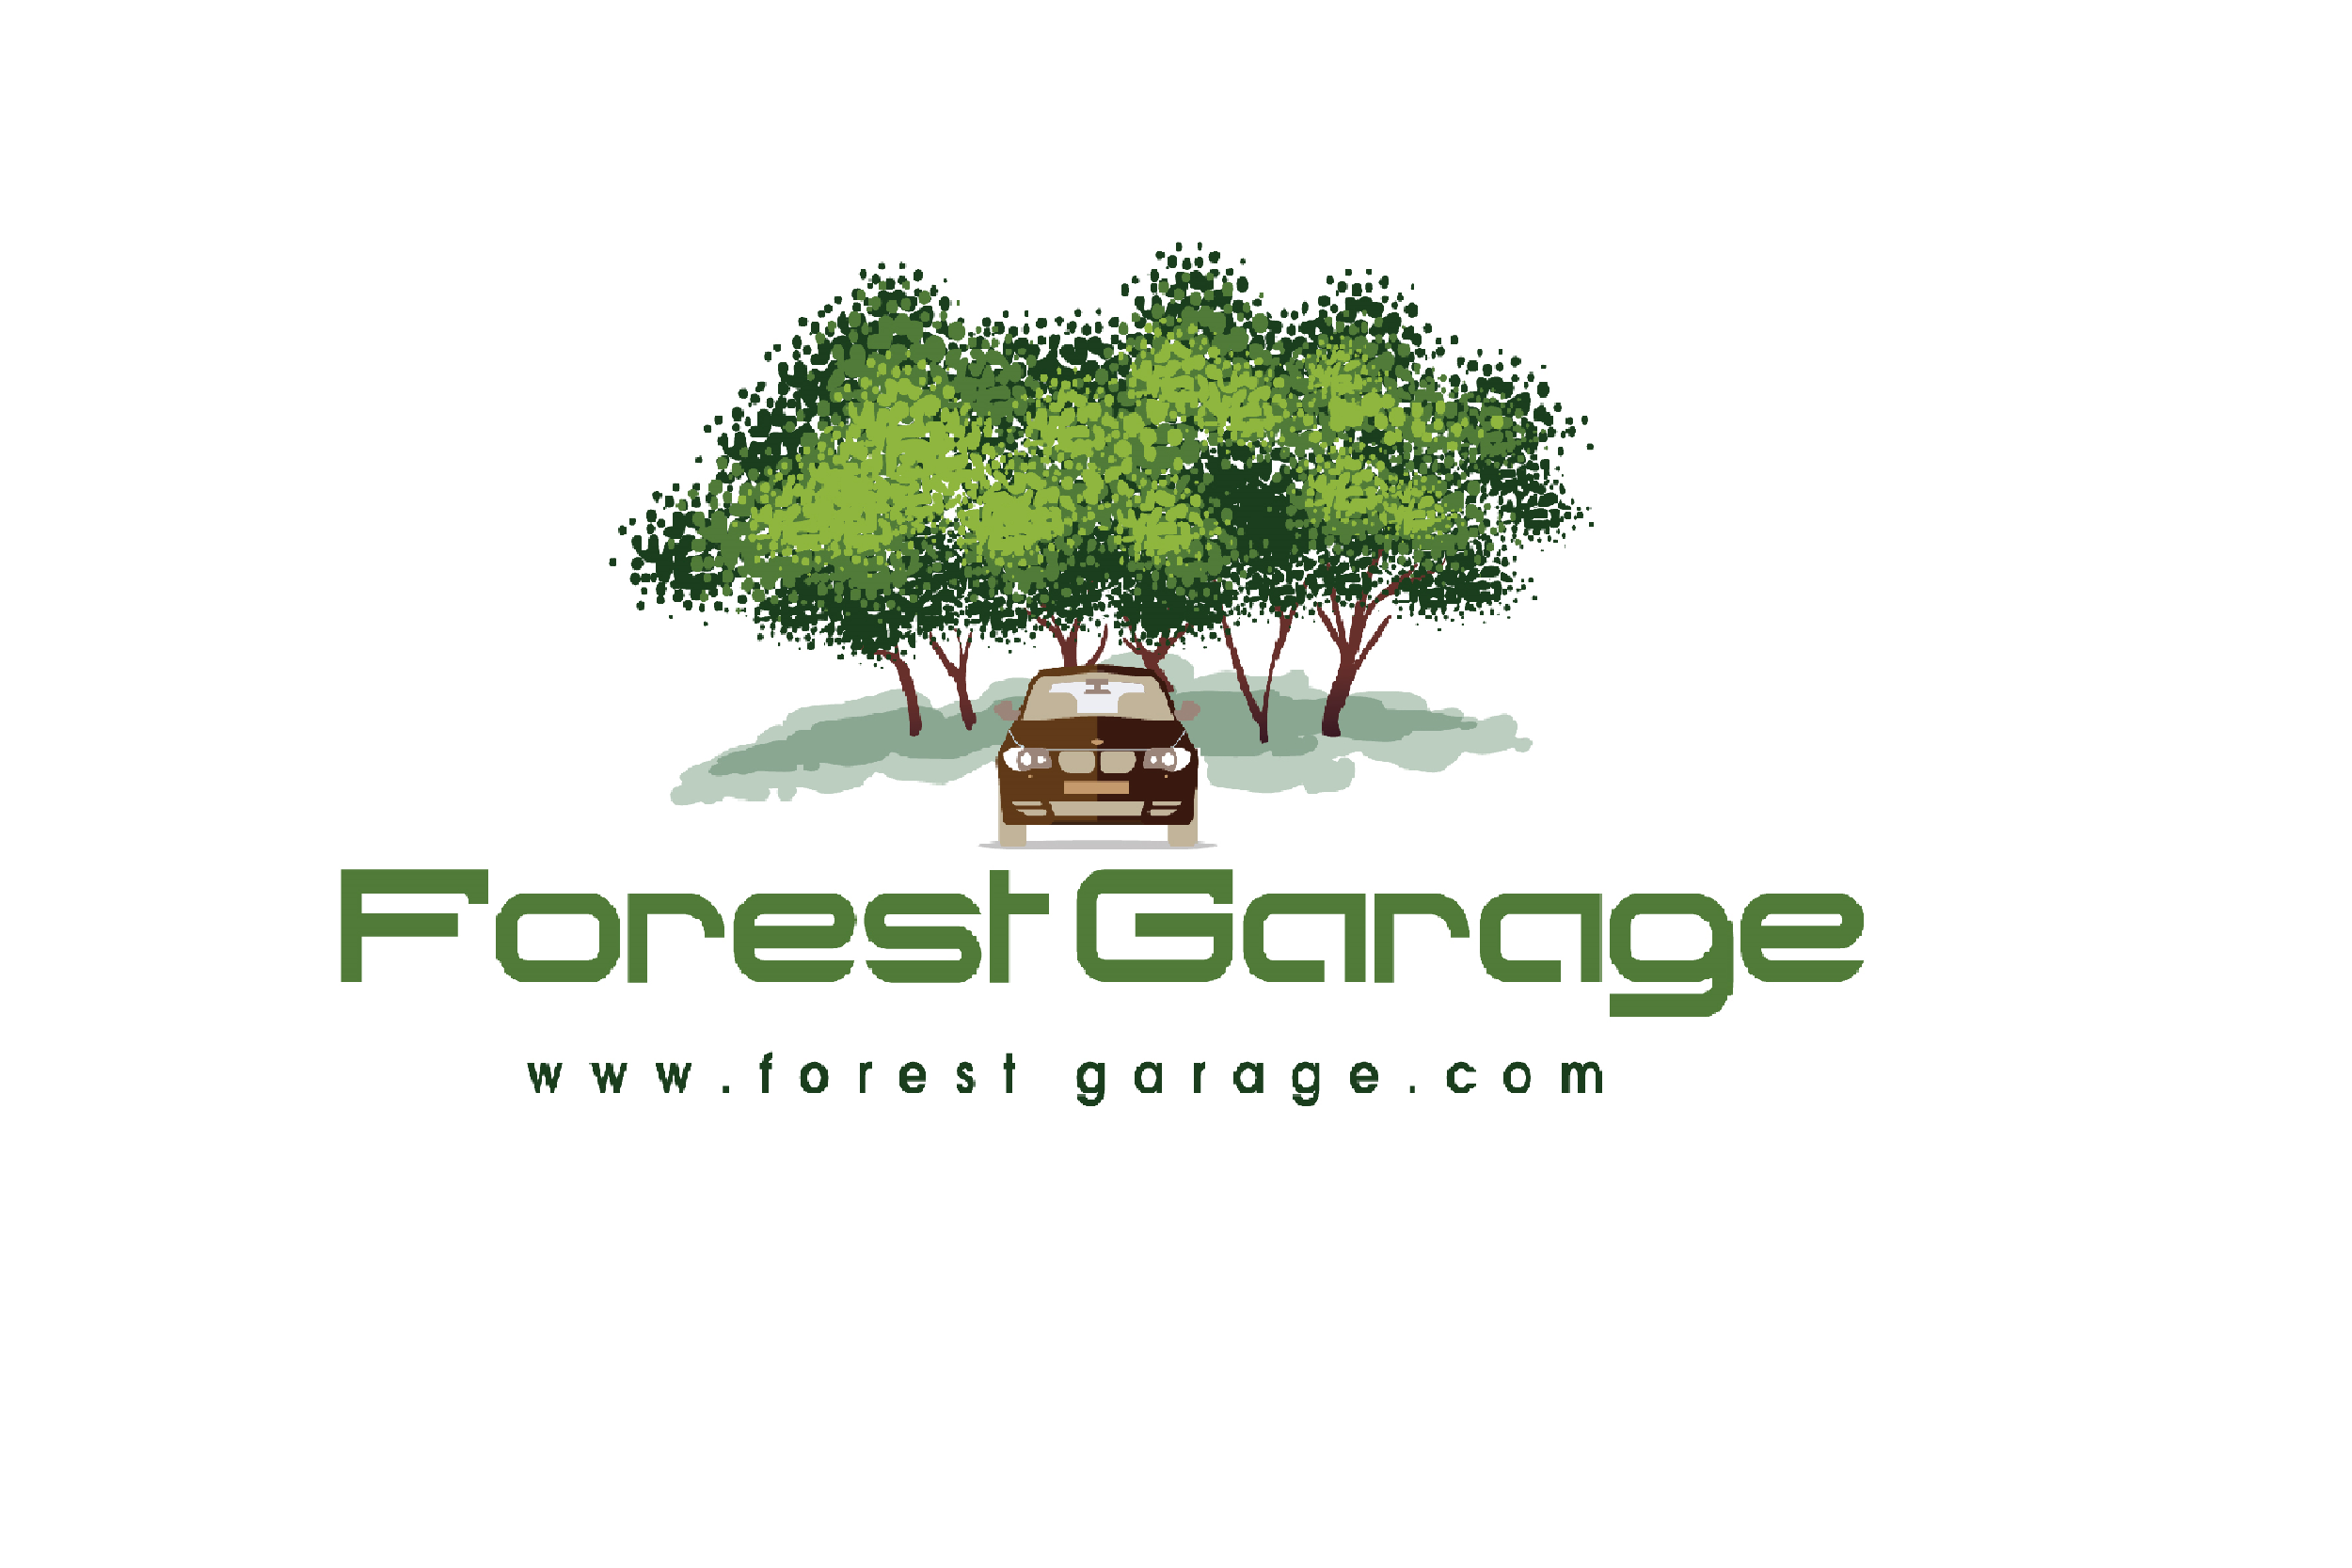 Forest garage - Trawden, Lancashire BB8 8SD - 01282 865063 | ShowMeLocal.com